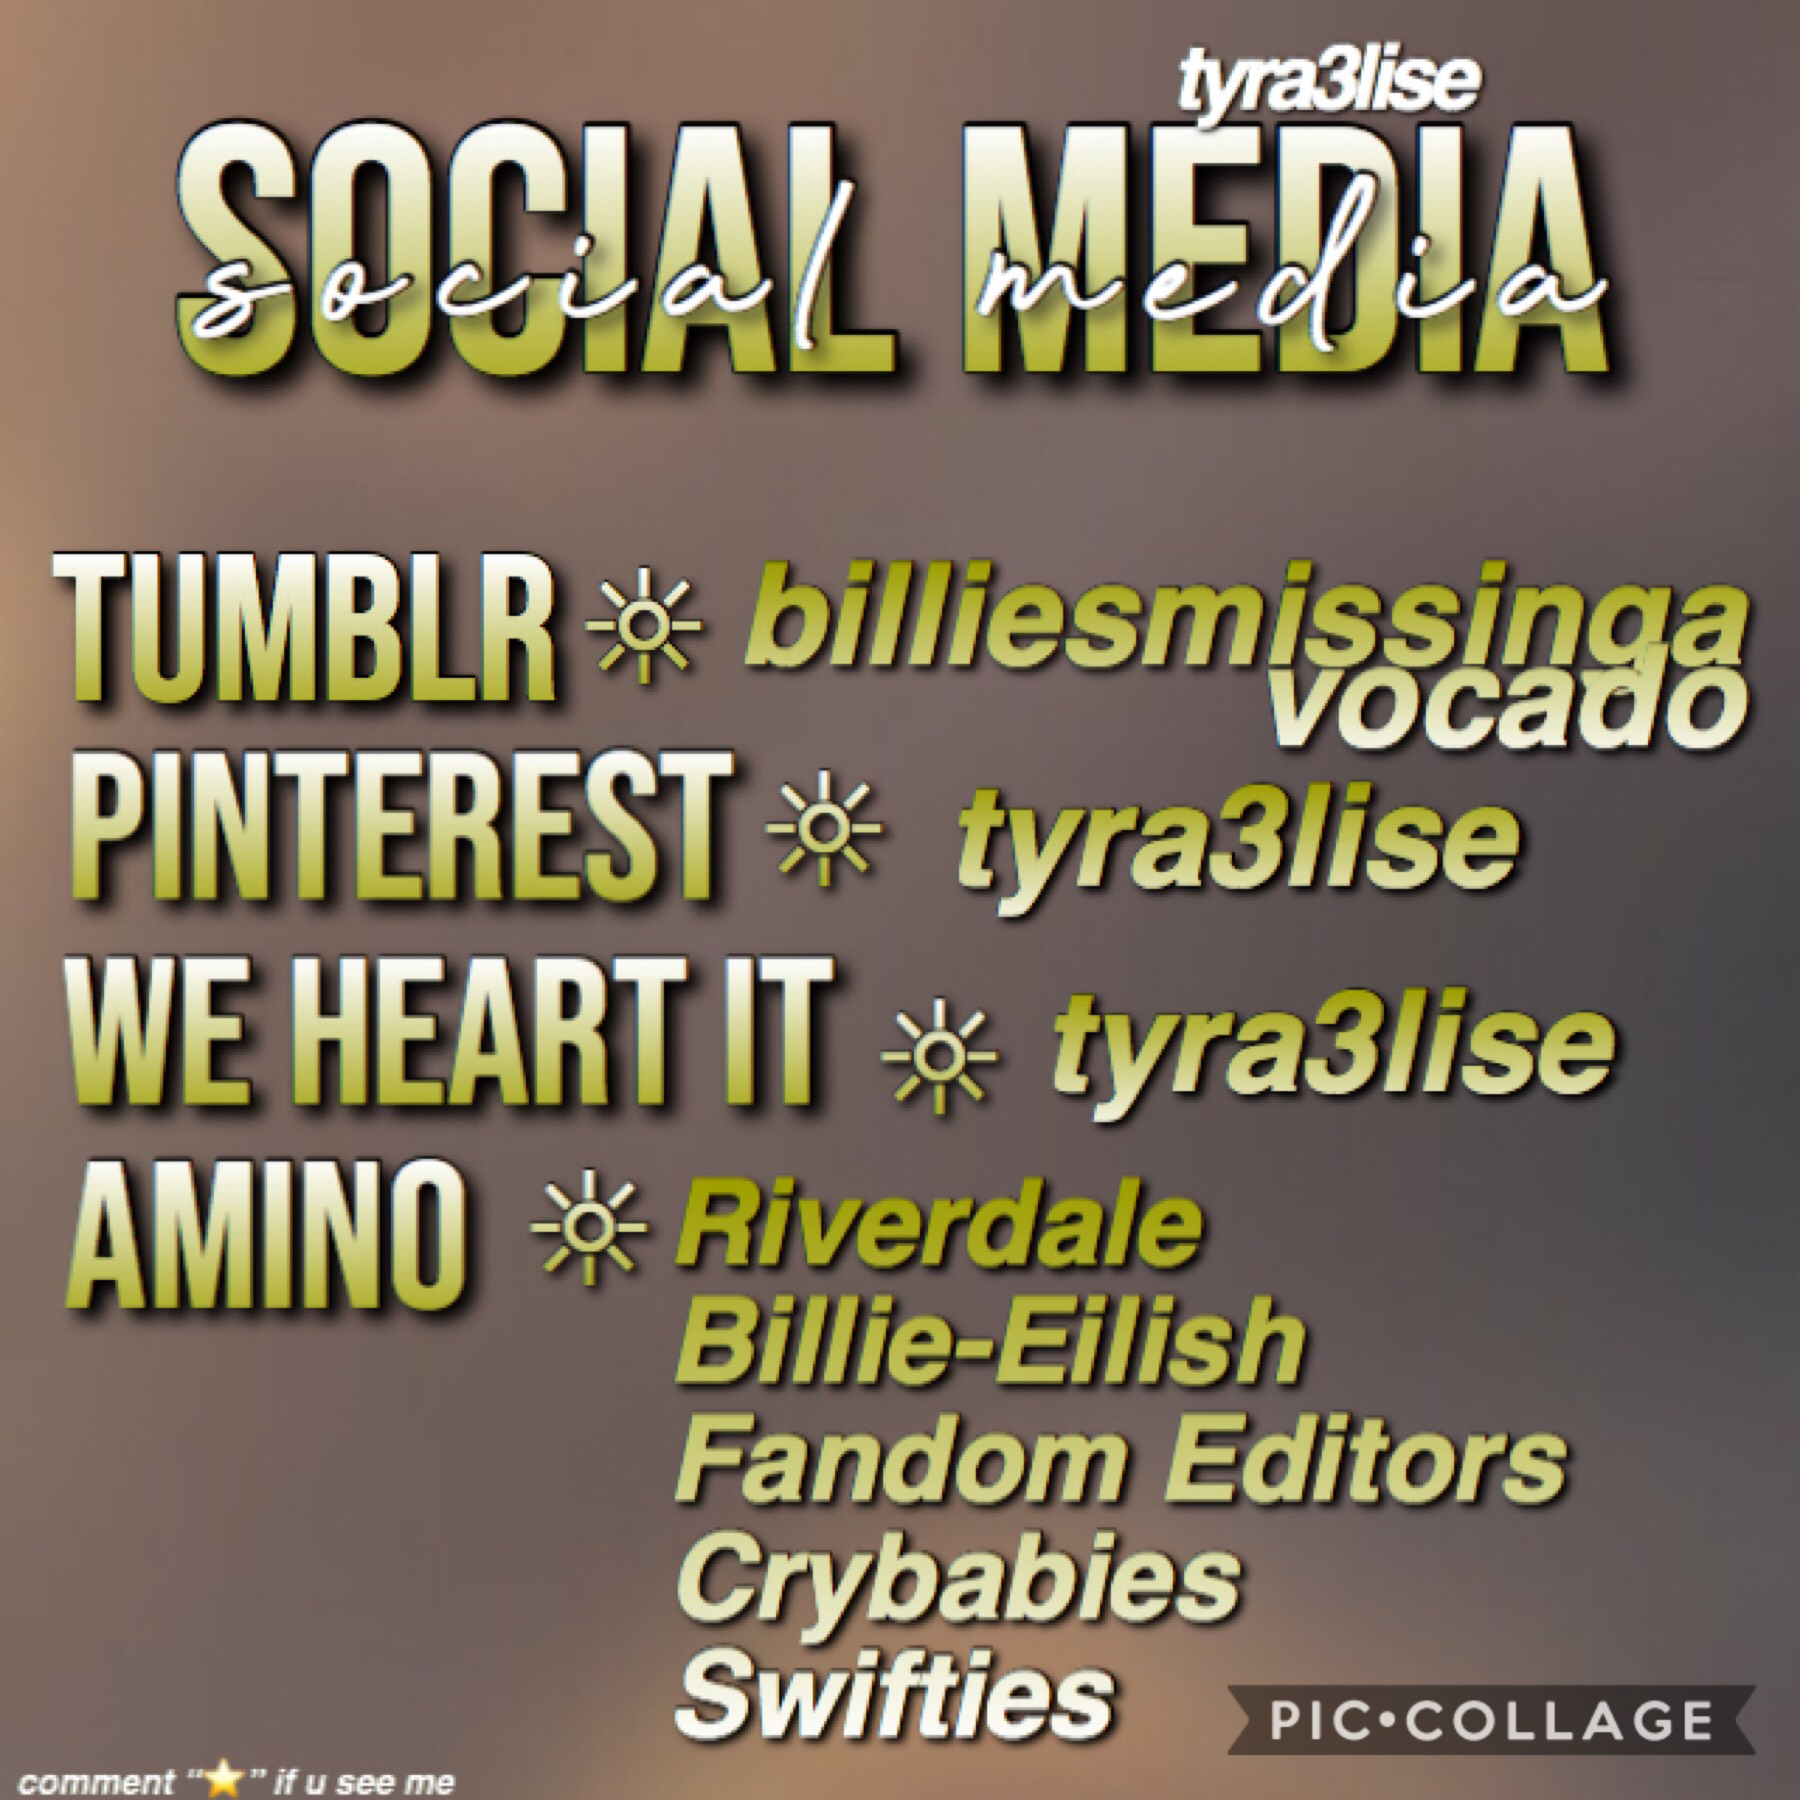 here are some of my social media platforms I have uwu